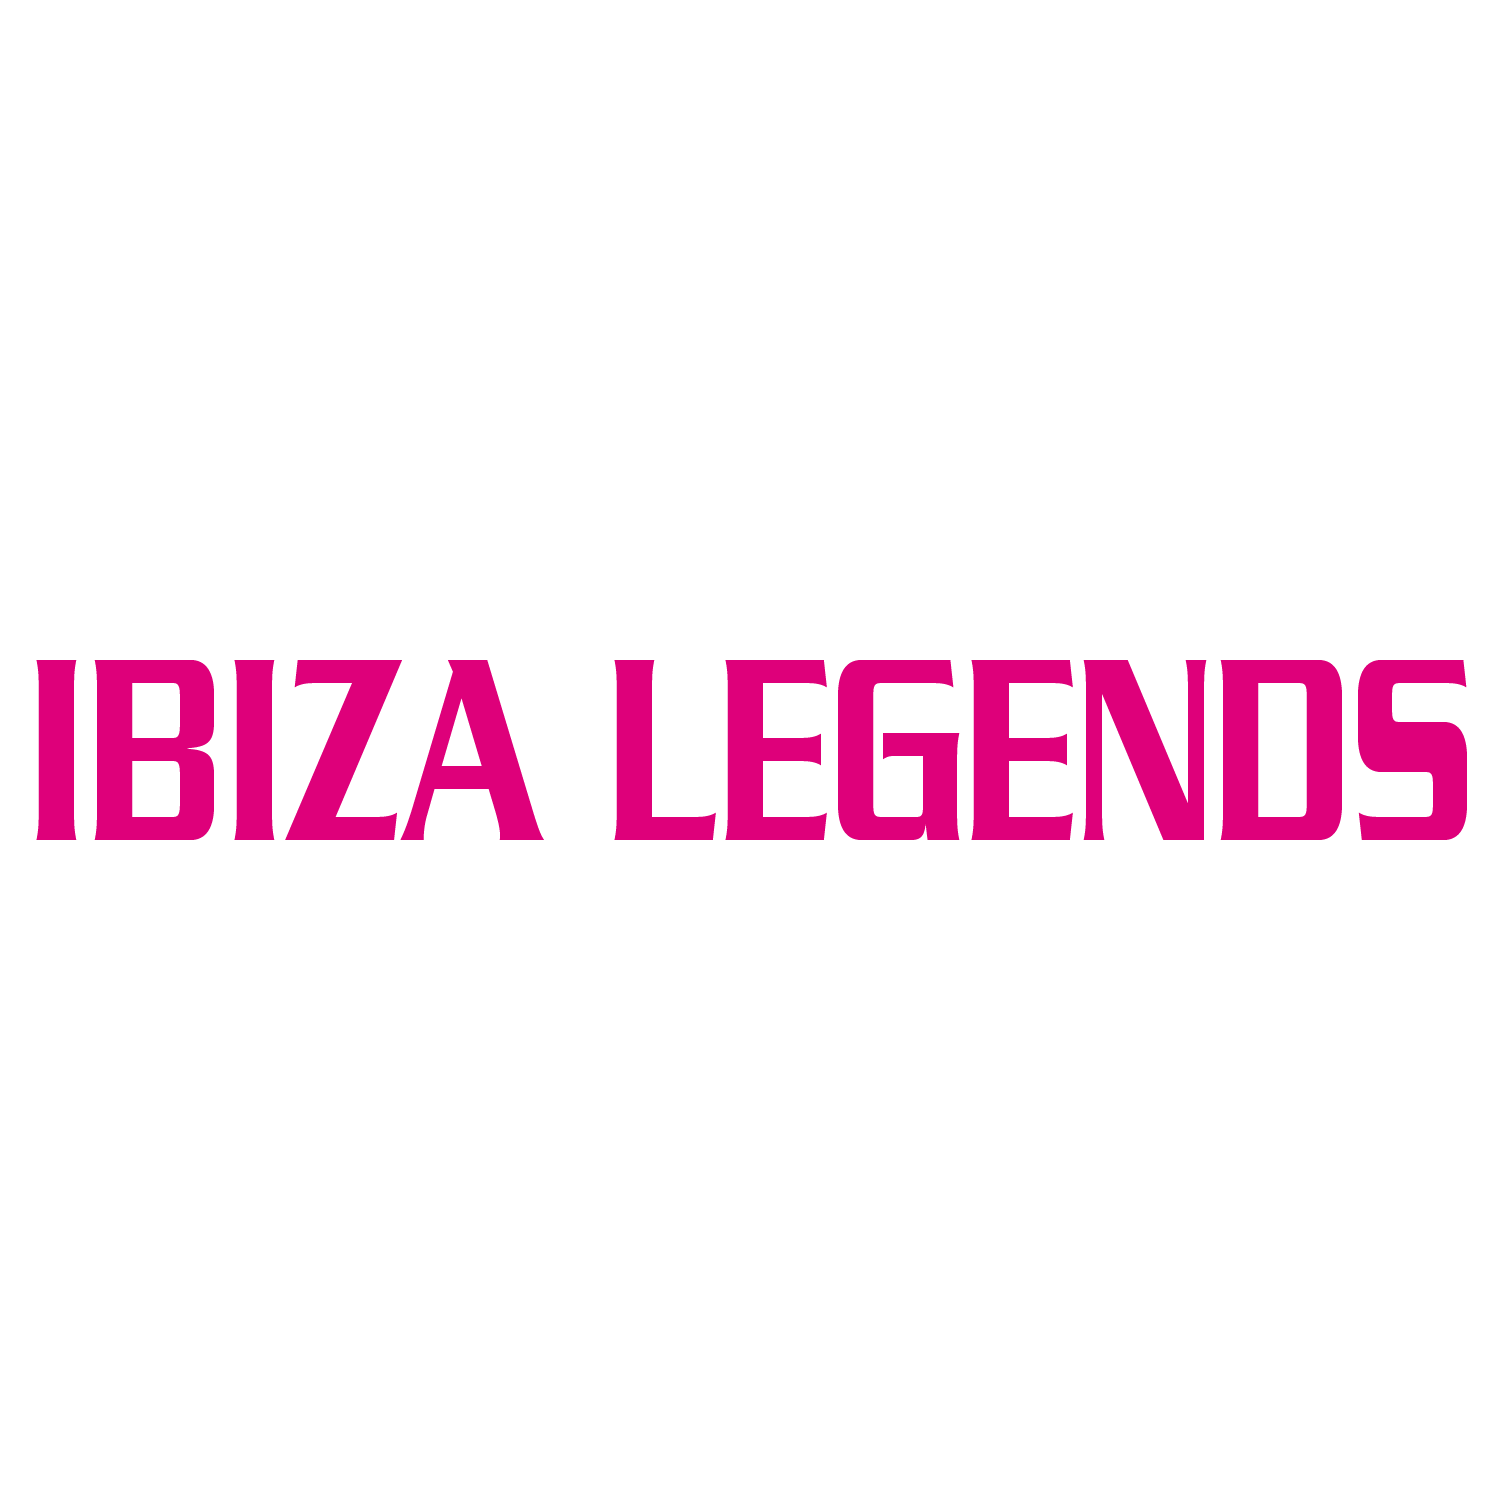 Ibiza-Legends.png